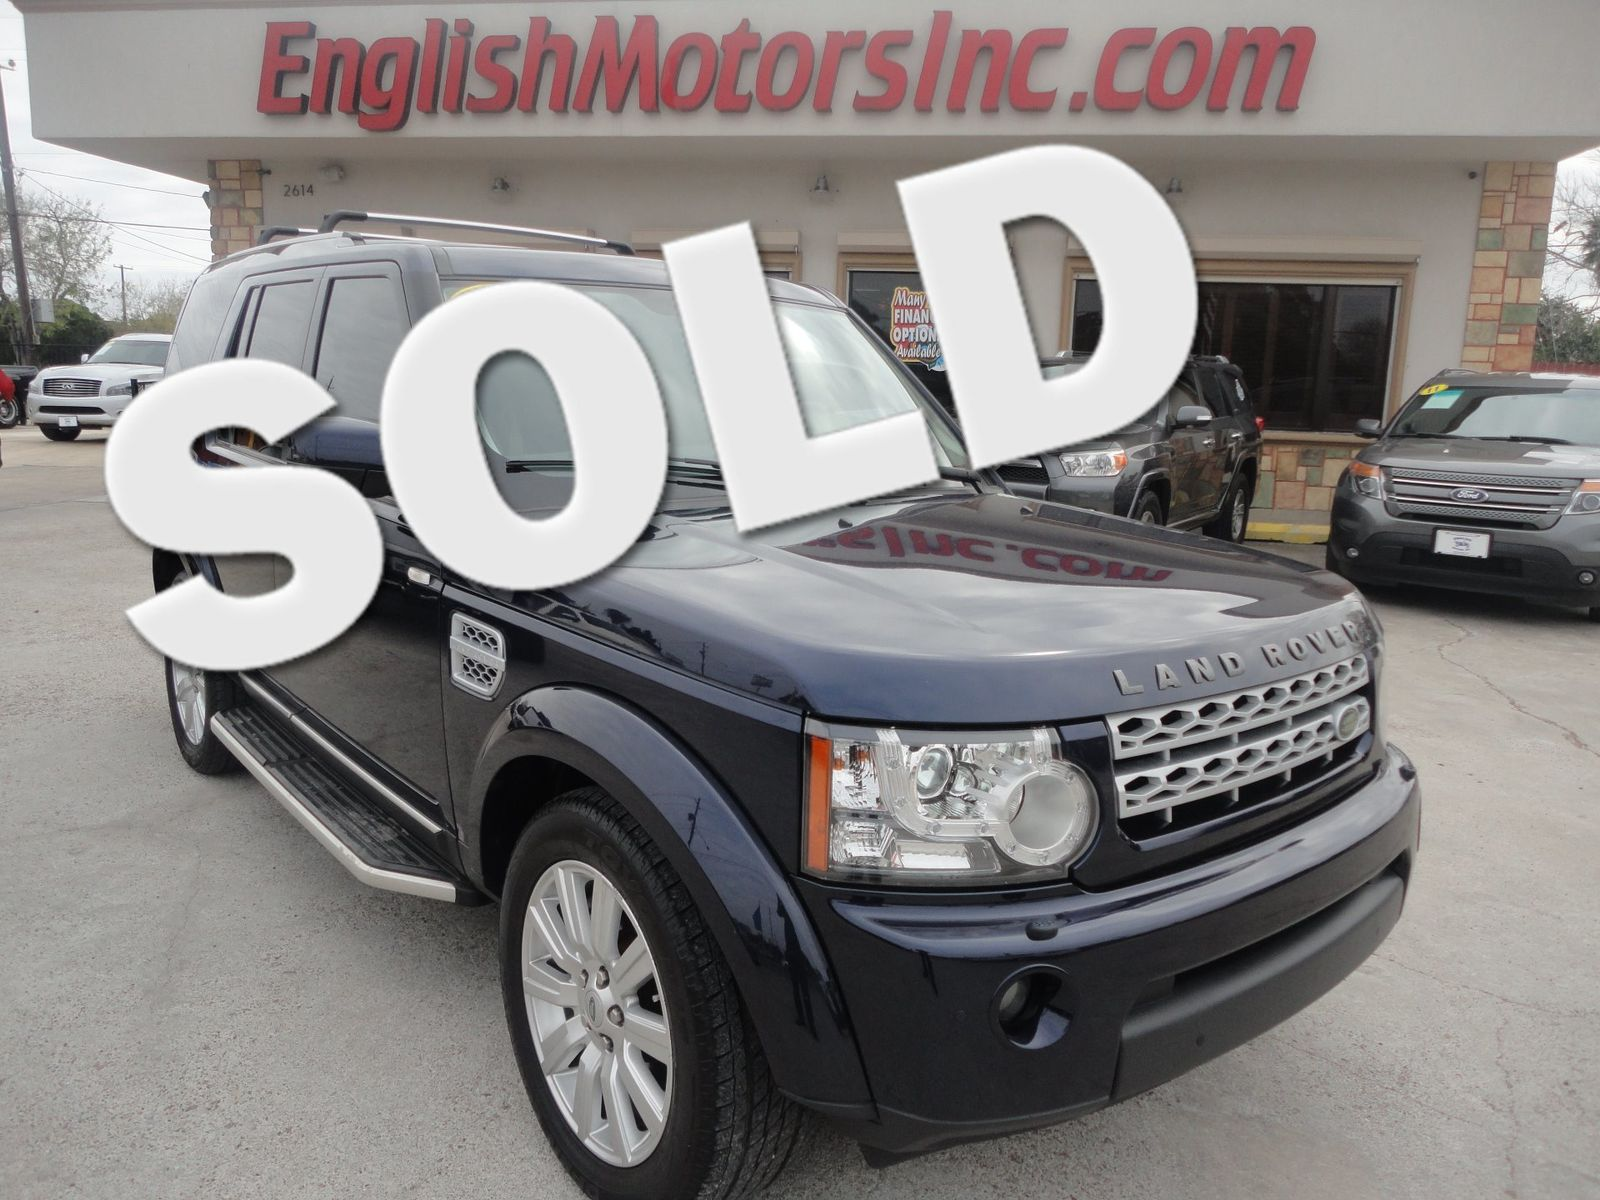 2013 Land Rover LR4 HSE Brownsville TX English Motors